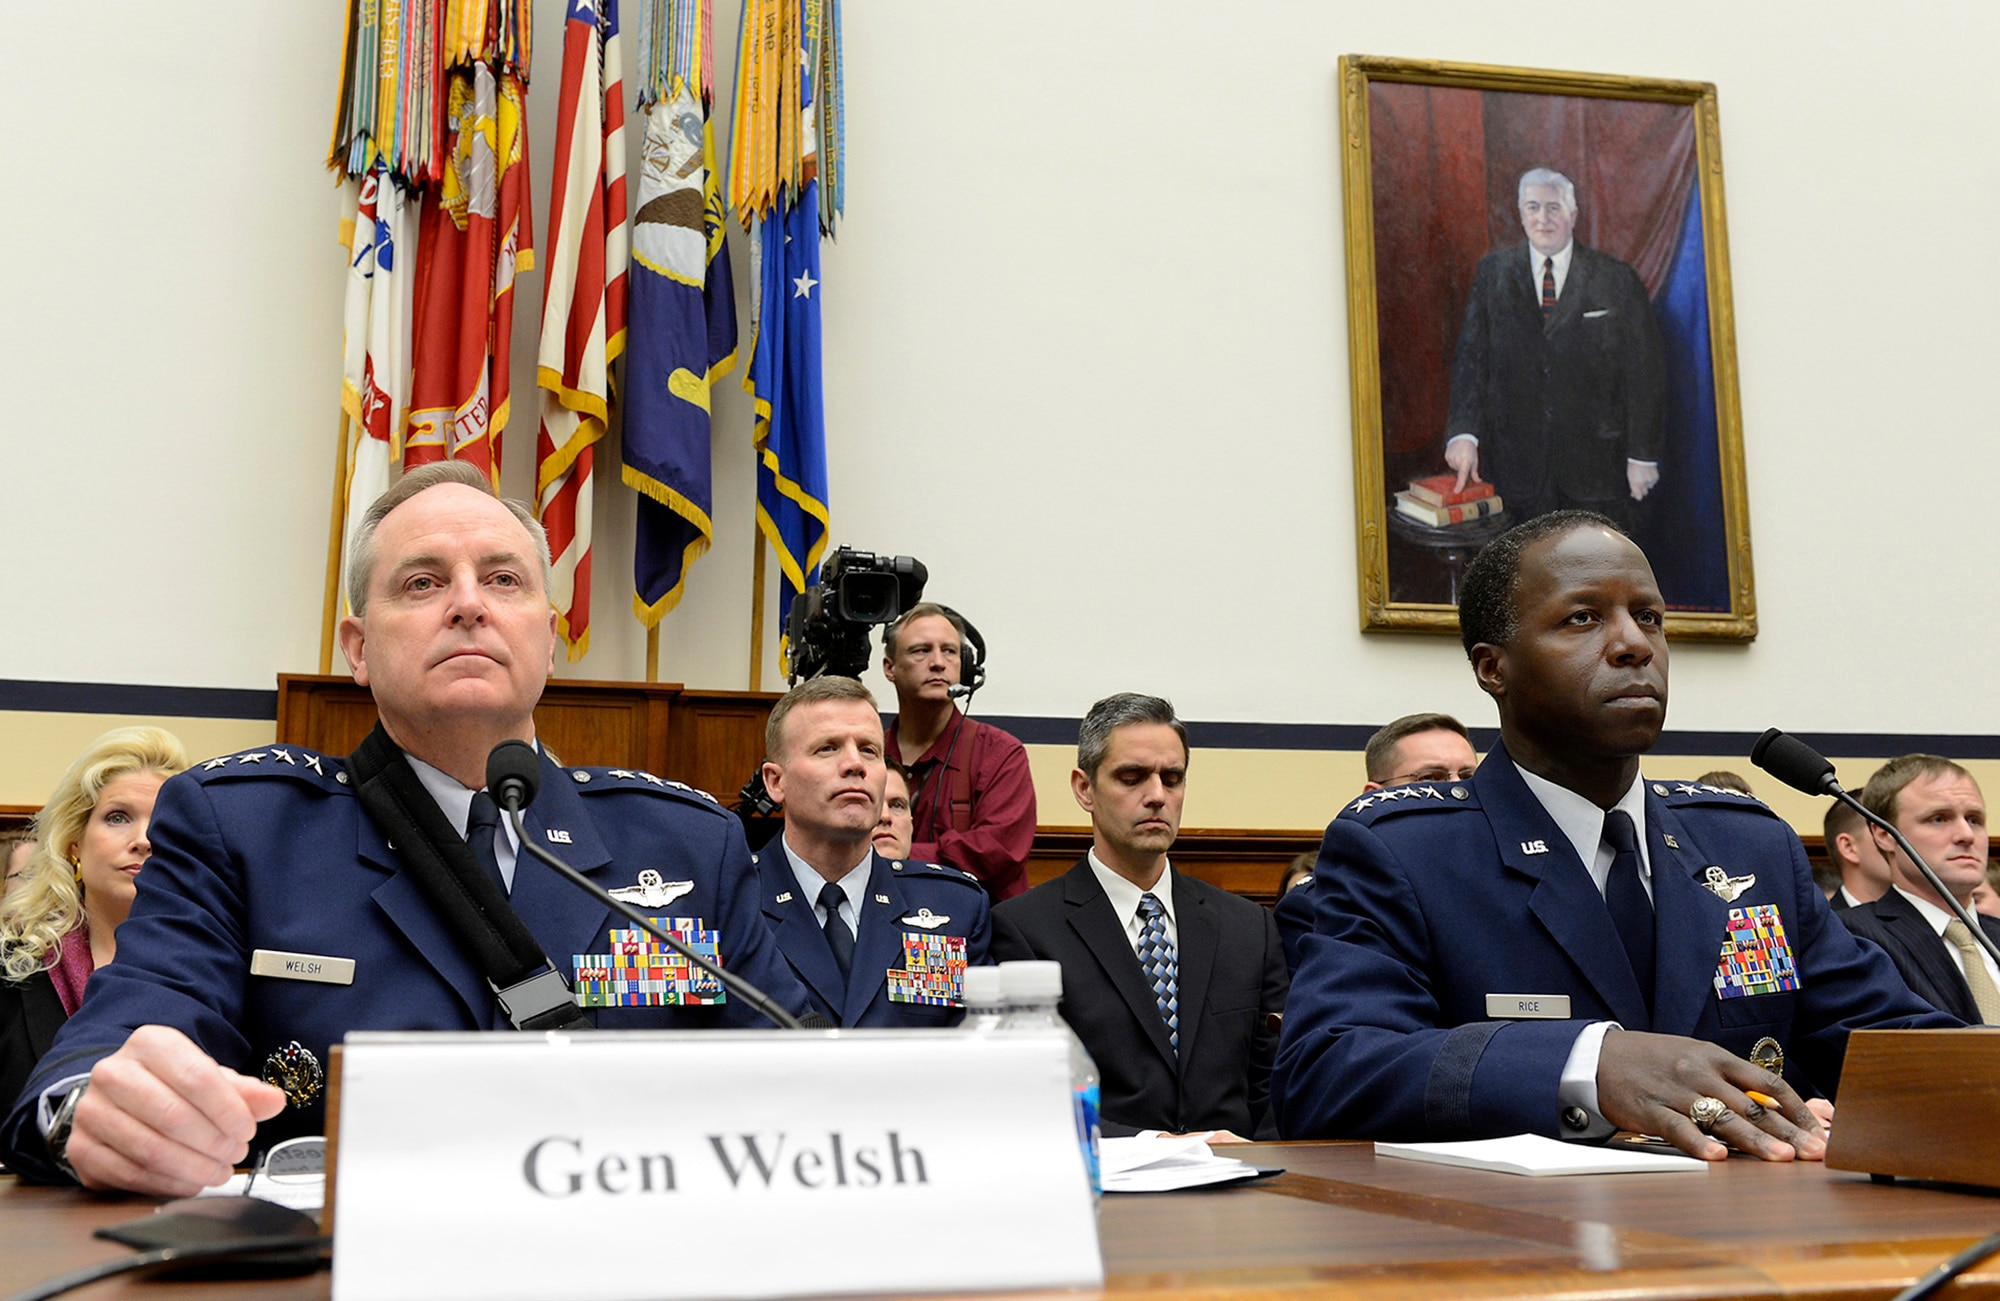 Air Force Chief of Staff Gen. Mark A. Welsh III and Gen. Edward A. Rice Jr., commander of Air Education and Training Command, appear before the House Armed Services Committee on Jan. 23, 2013, for a hearing on sexual misconduct at Basic Military Training at Joint Base San Antonio-Lackland, Texas.  Welsh and Rice discussed the findings of the Basic Military Training commander-directed investigation and efforts to stop sexual assault within the service.  (U.S. Air Force photo/Scott M. Ash)